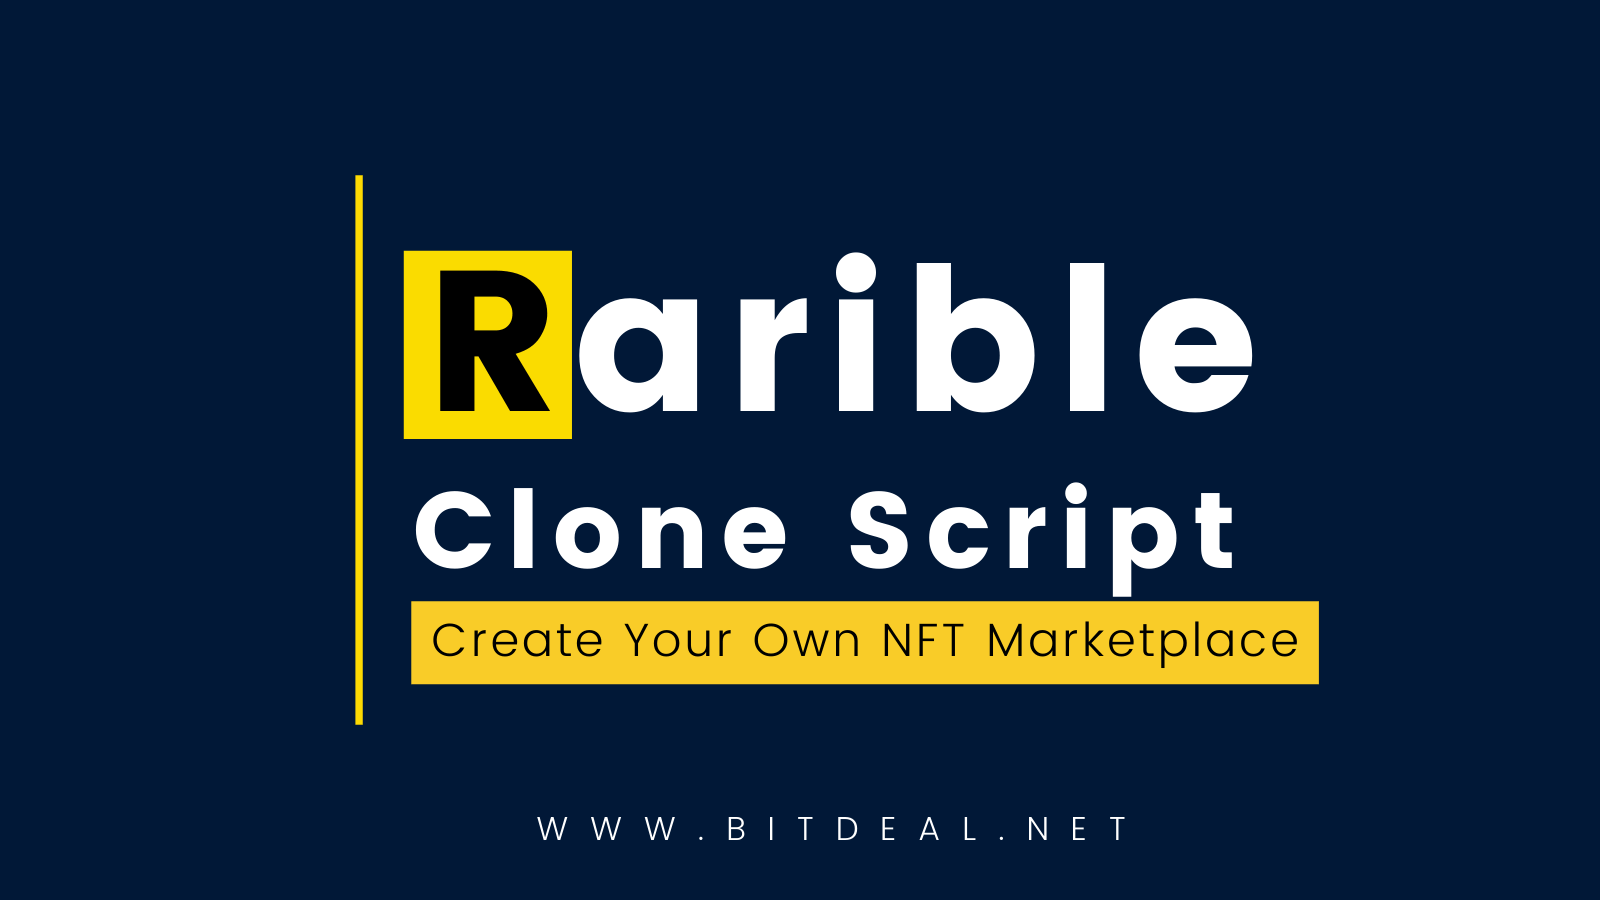 How to Build a NFT Marketplace like Rarible